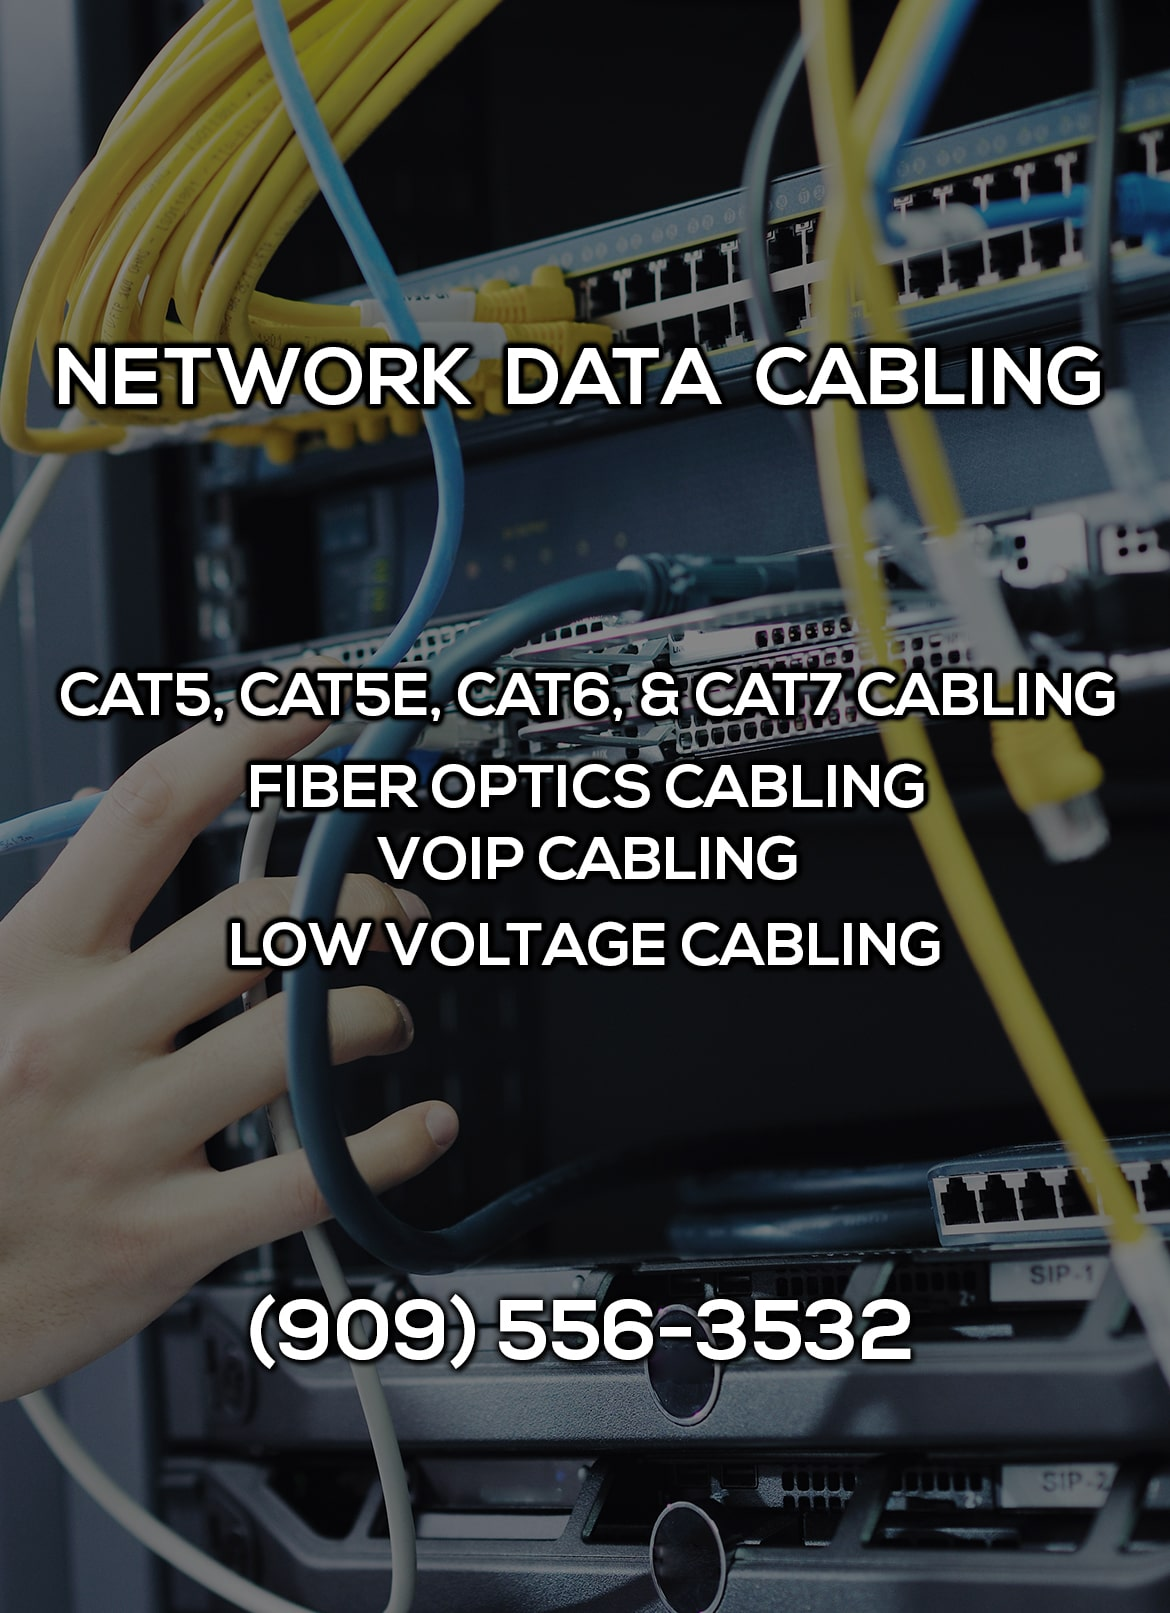 Network Data Cabling in Highland CA